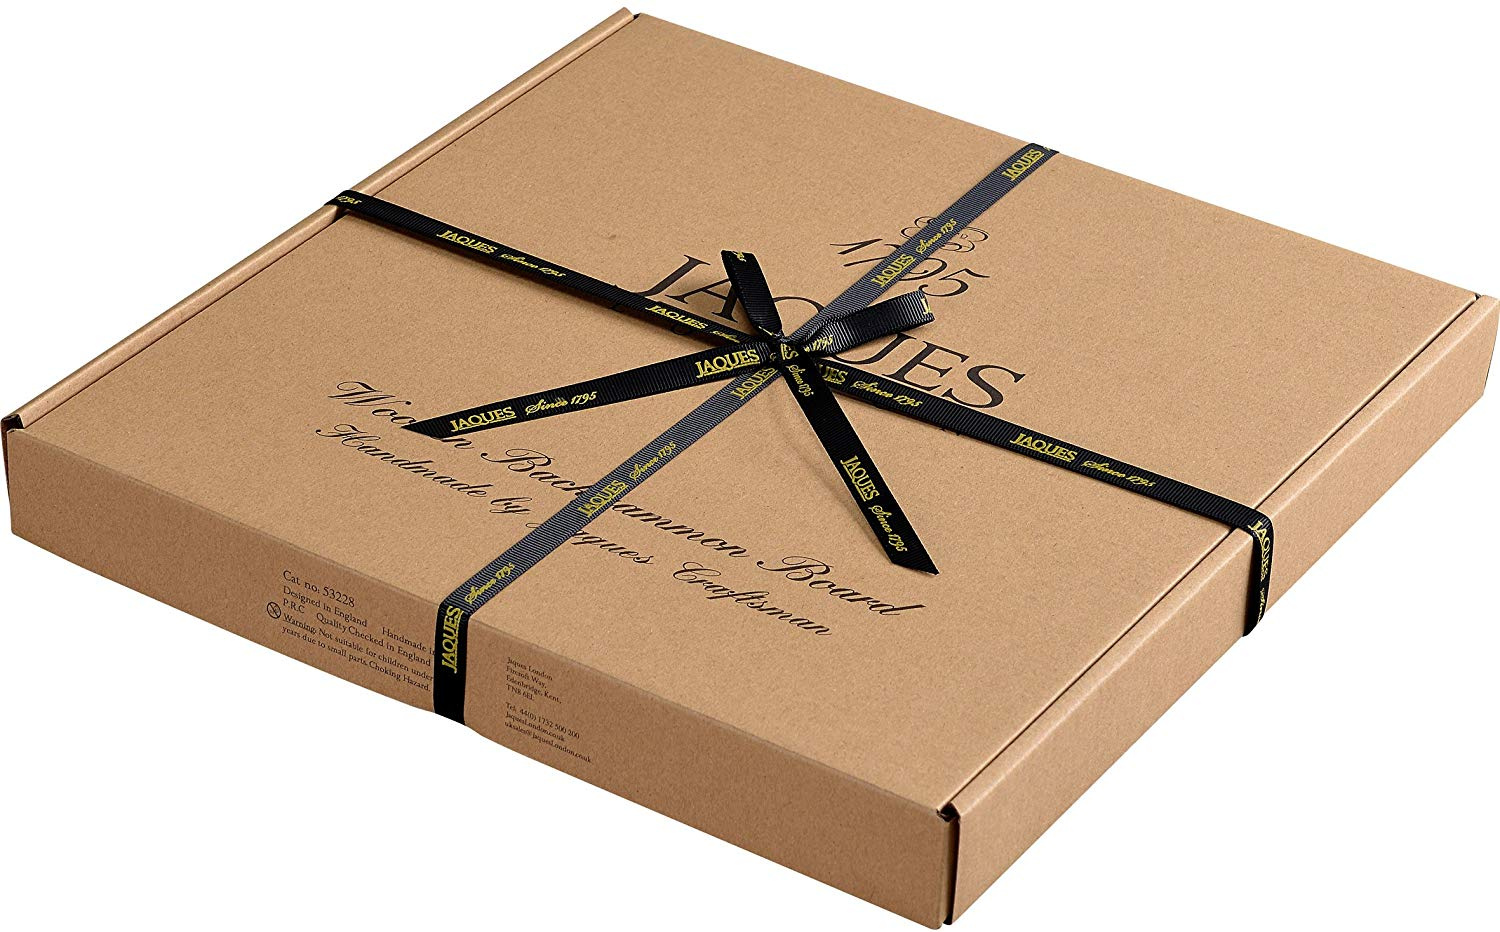 Gift Packing Quality Games Since 1795 Luxury Genuine Leather